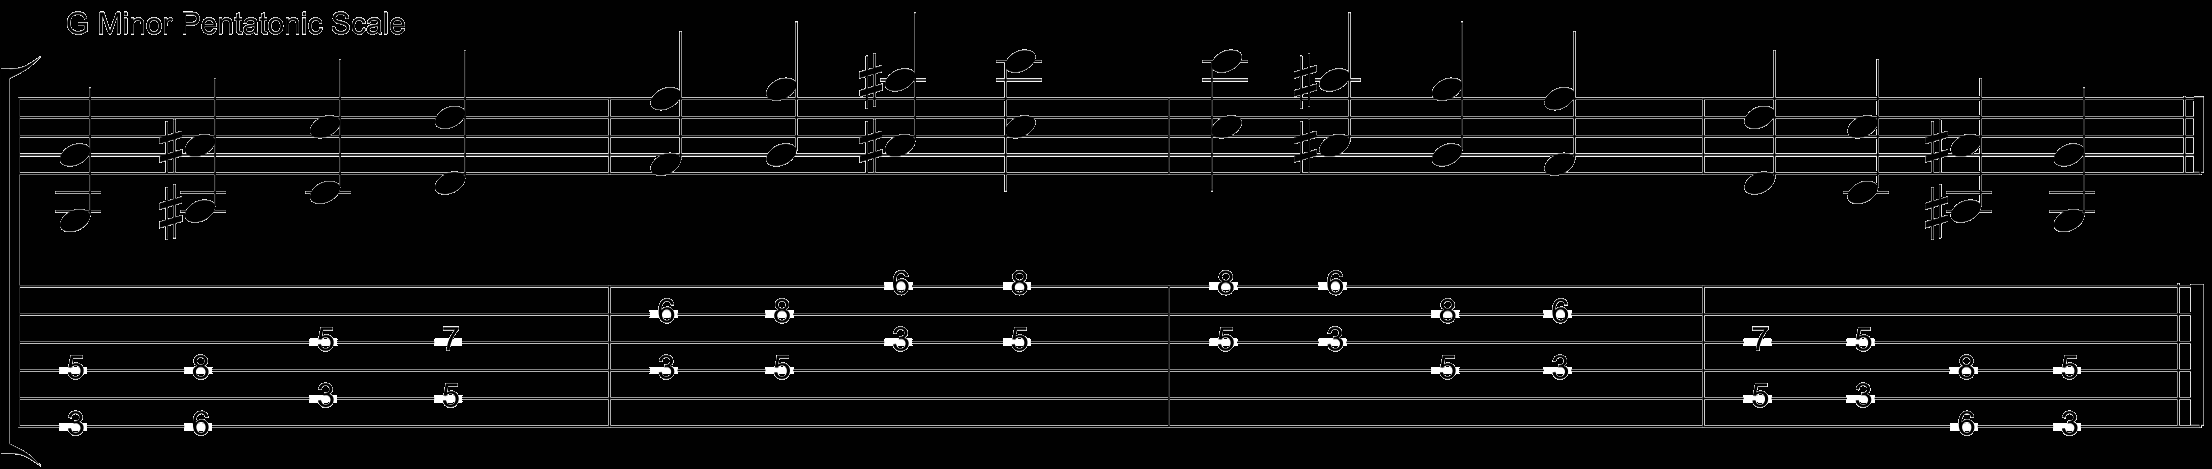 G Minor pentatonic octave guitar shapes how to learn the guitar fretboard notes